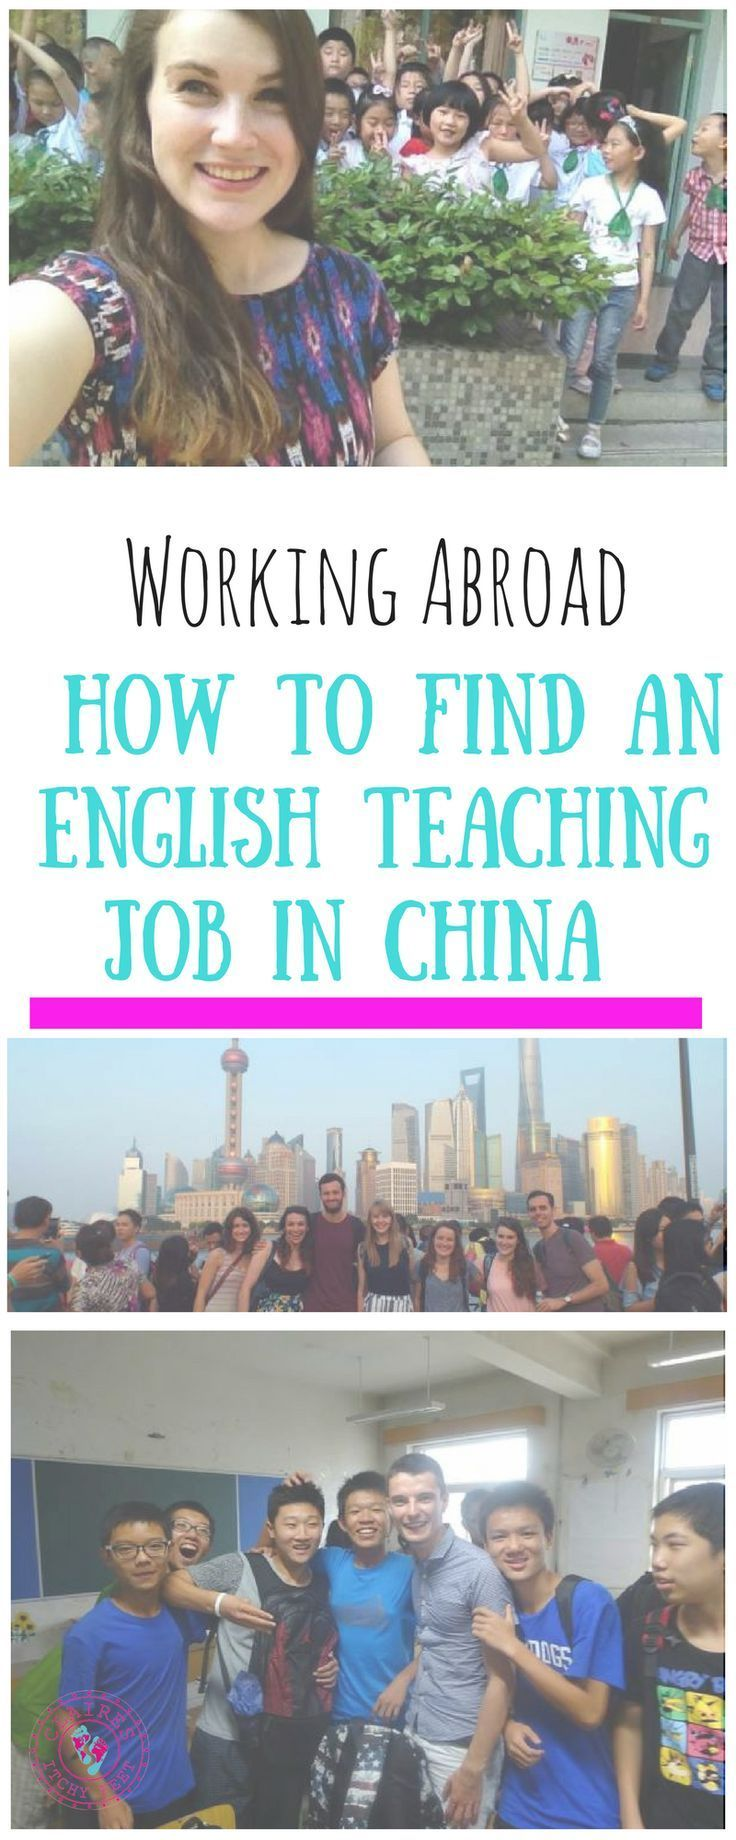 Working Abroad How to find an English Teaching Job in